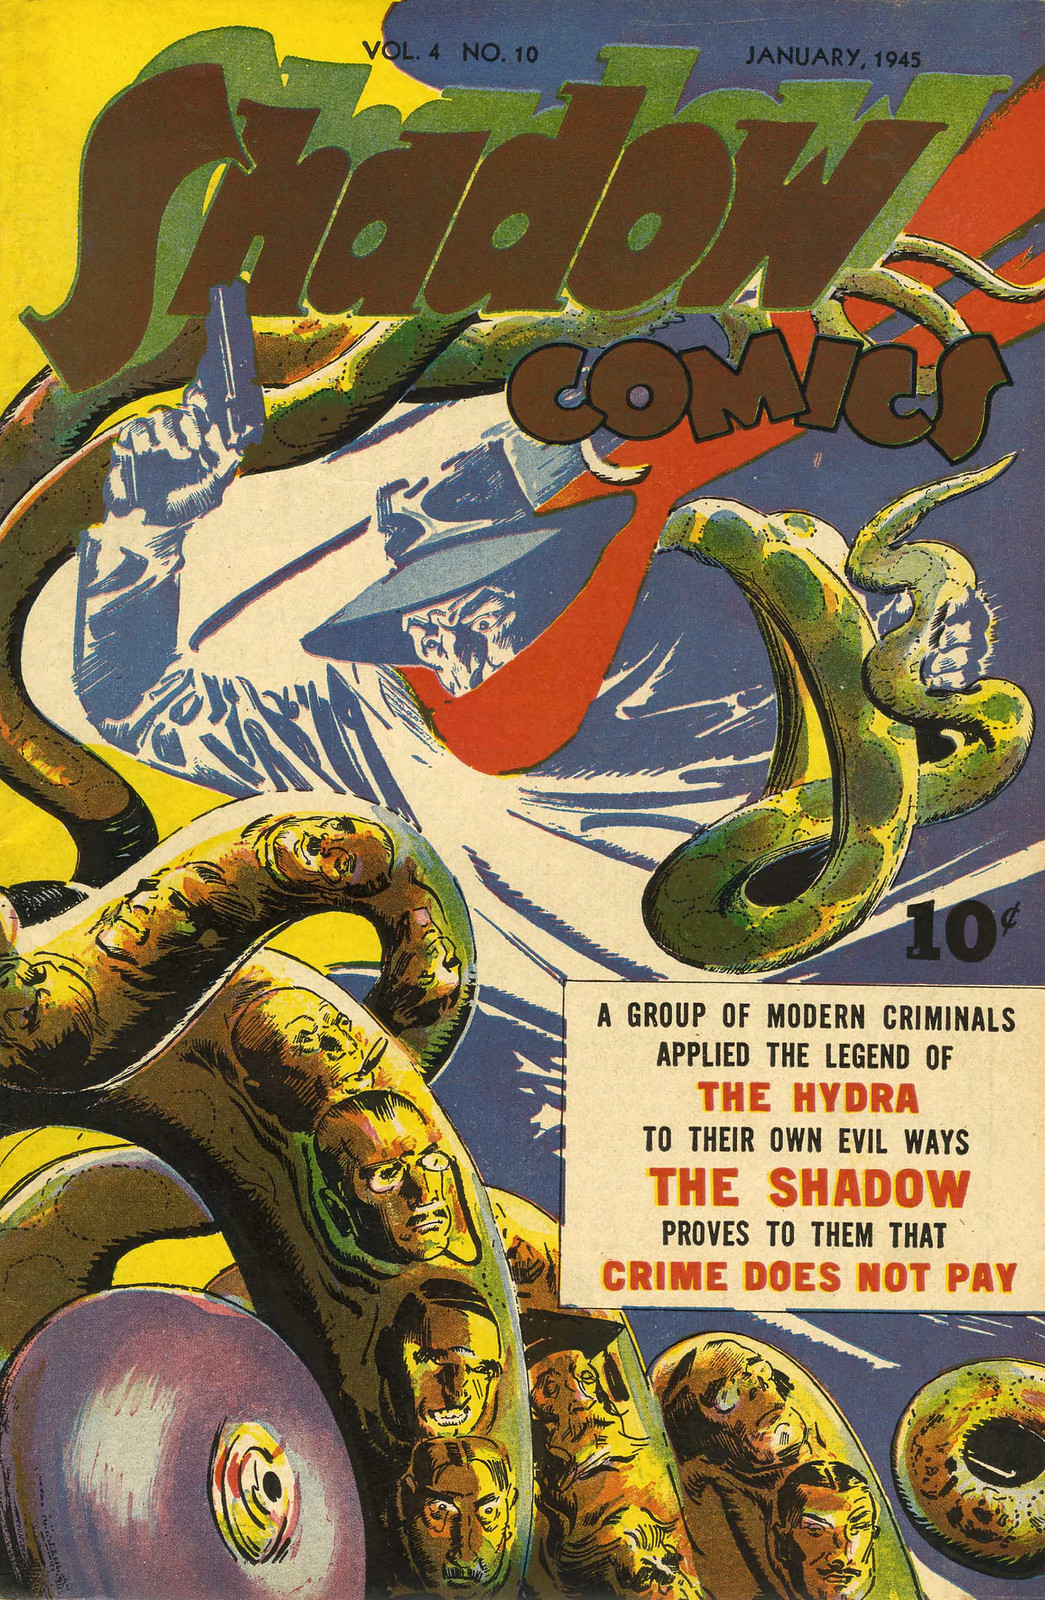 Shadow Comics Vol. 4, #10 (Street & Smith, 1945)